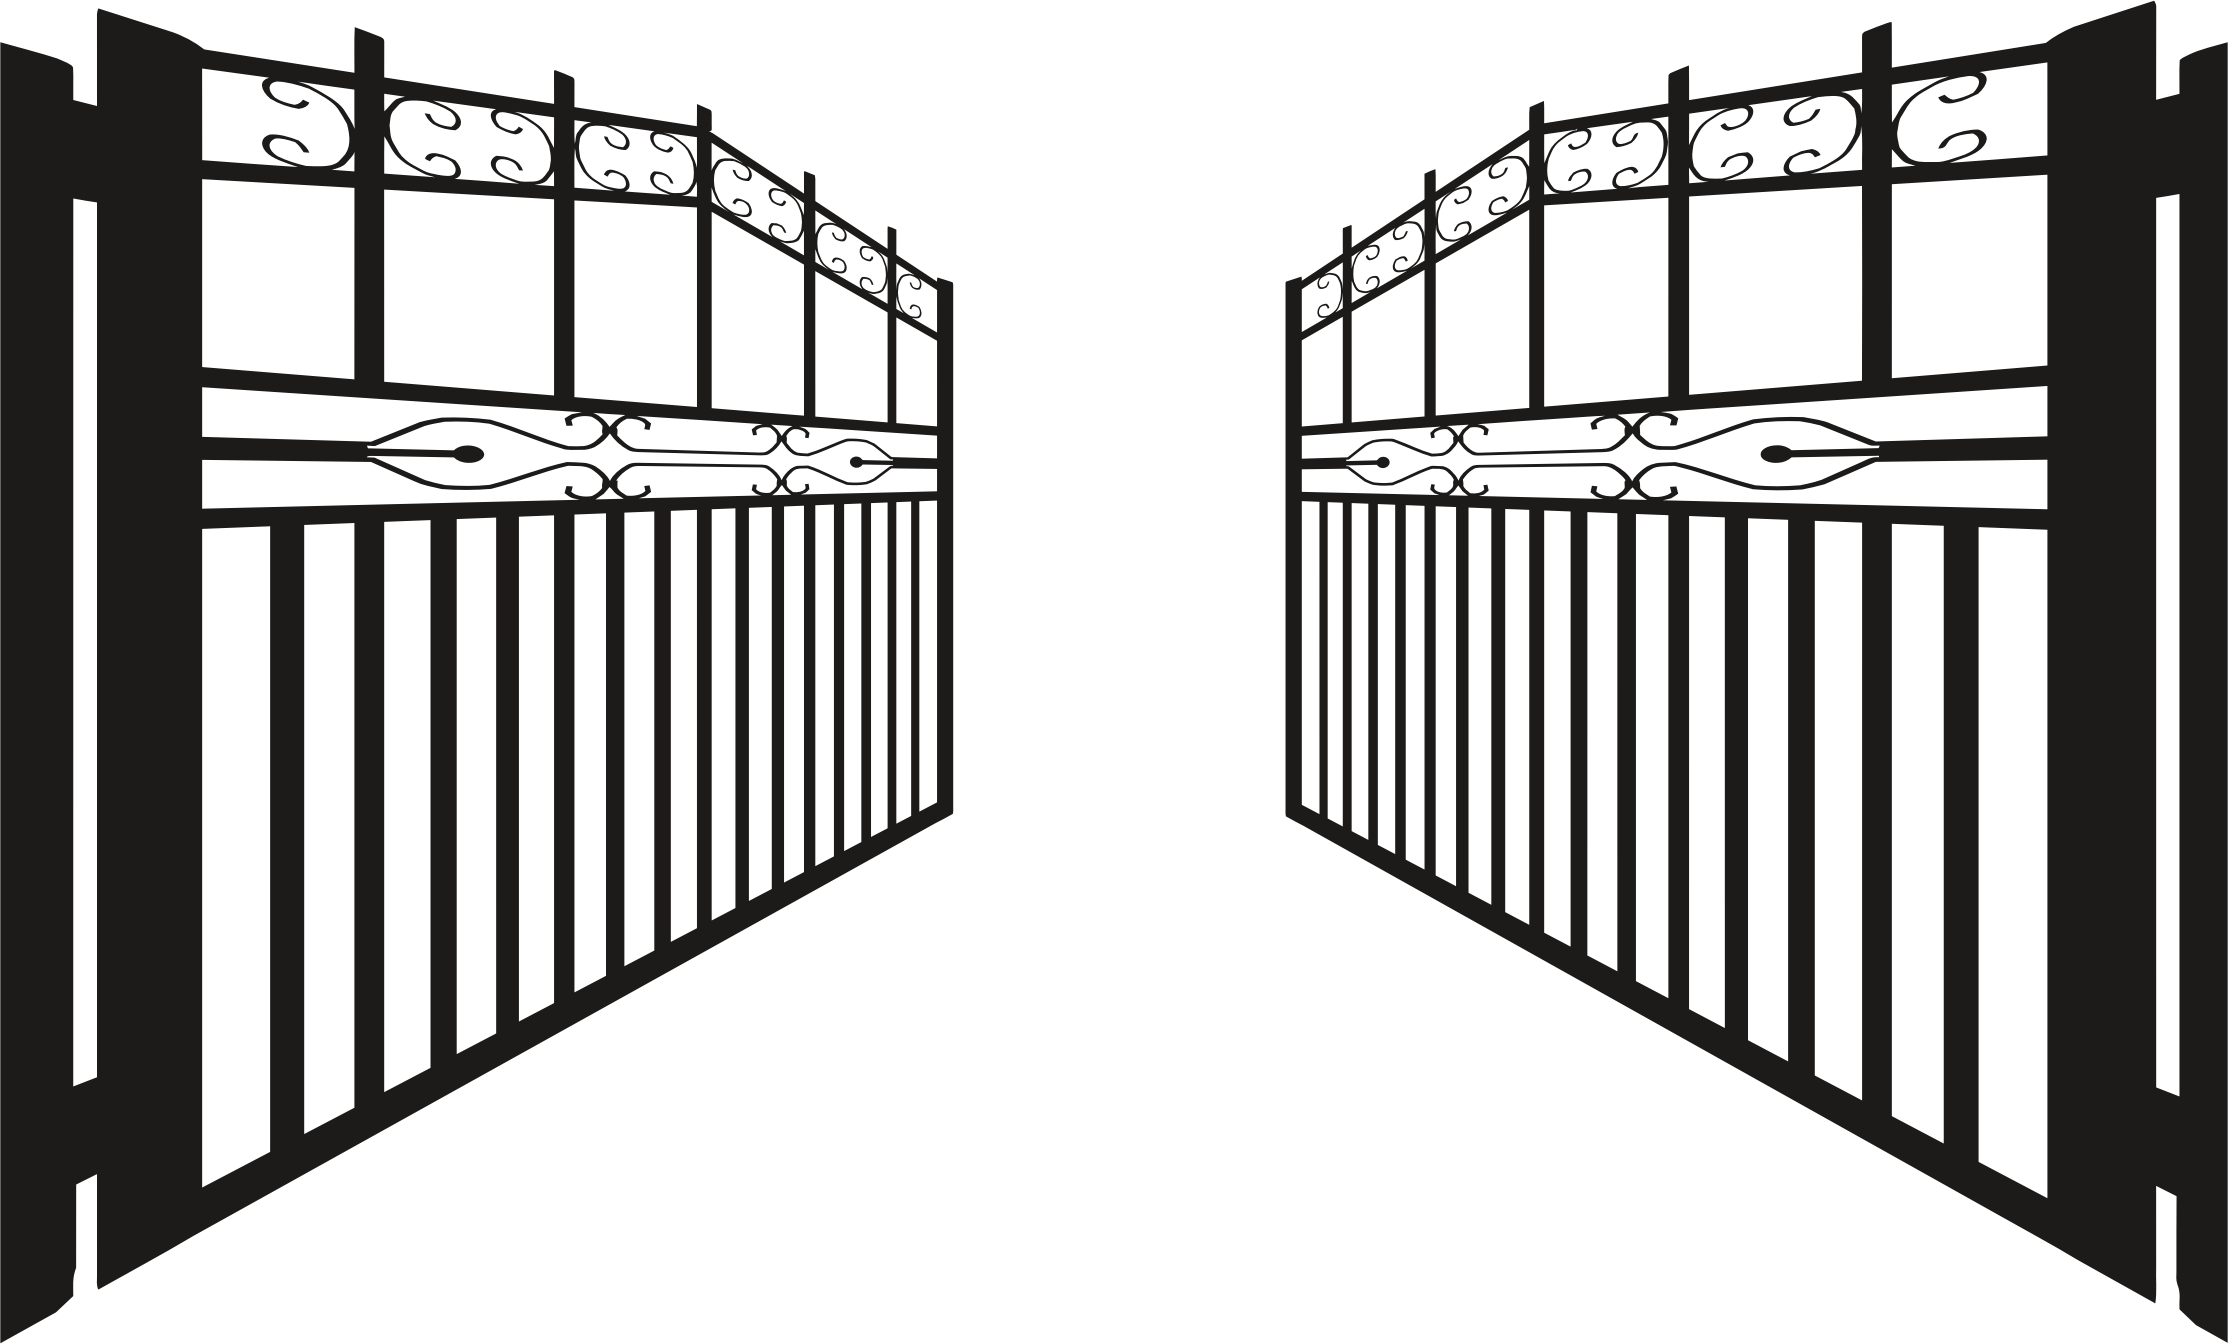 Gate Fence Clip art - Iron Gate Cliparts